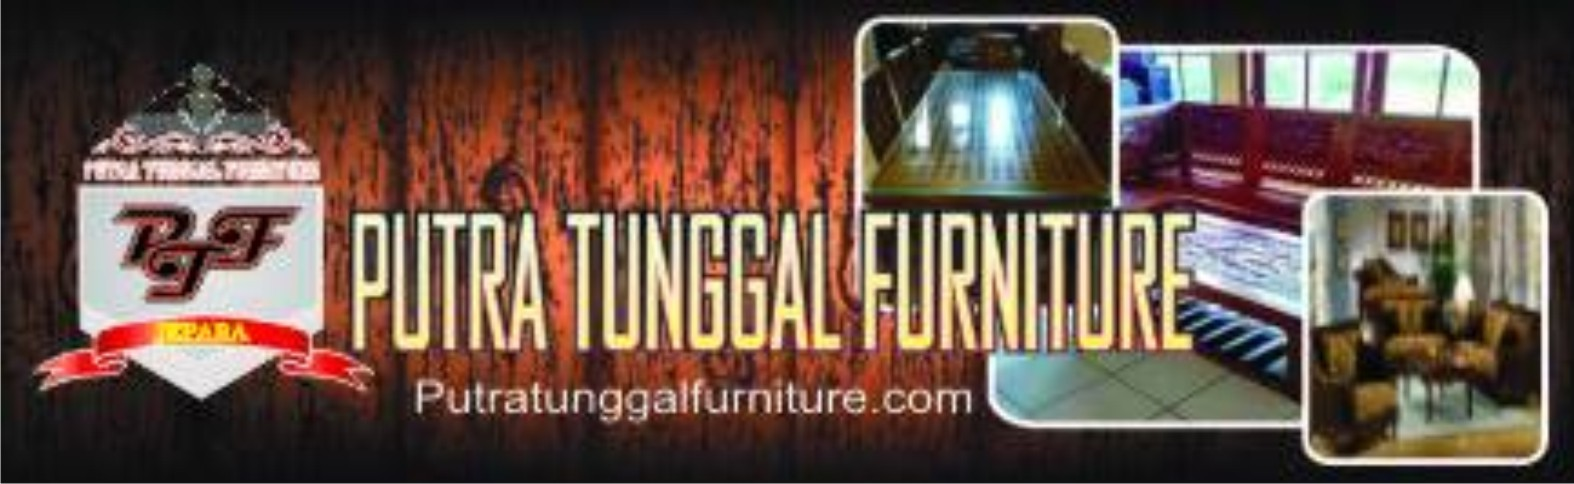 putratunggalfurniture